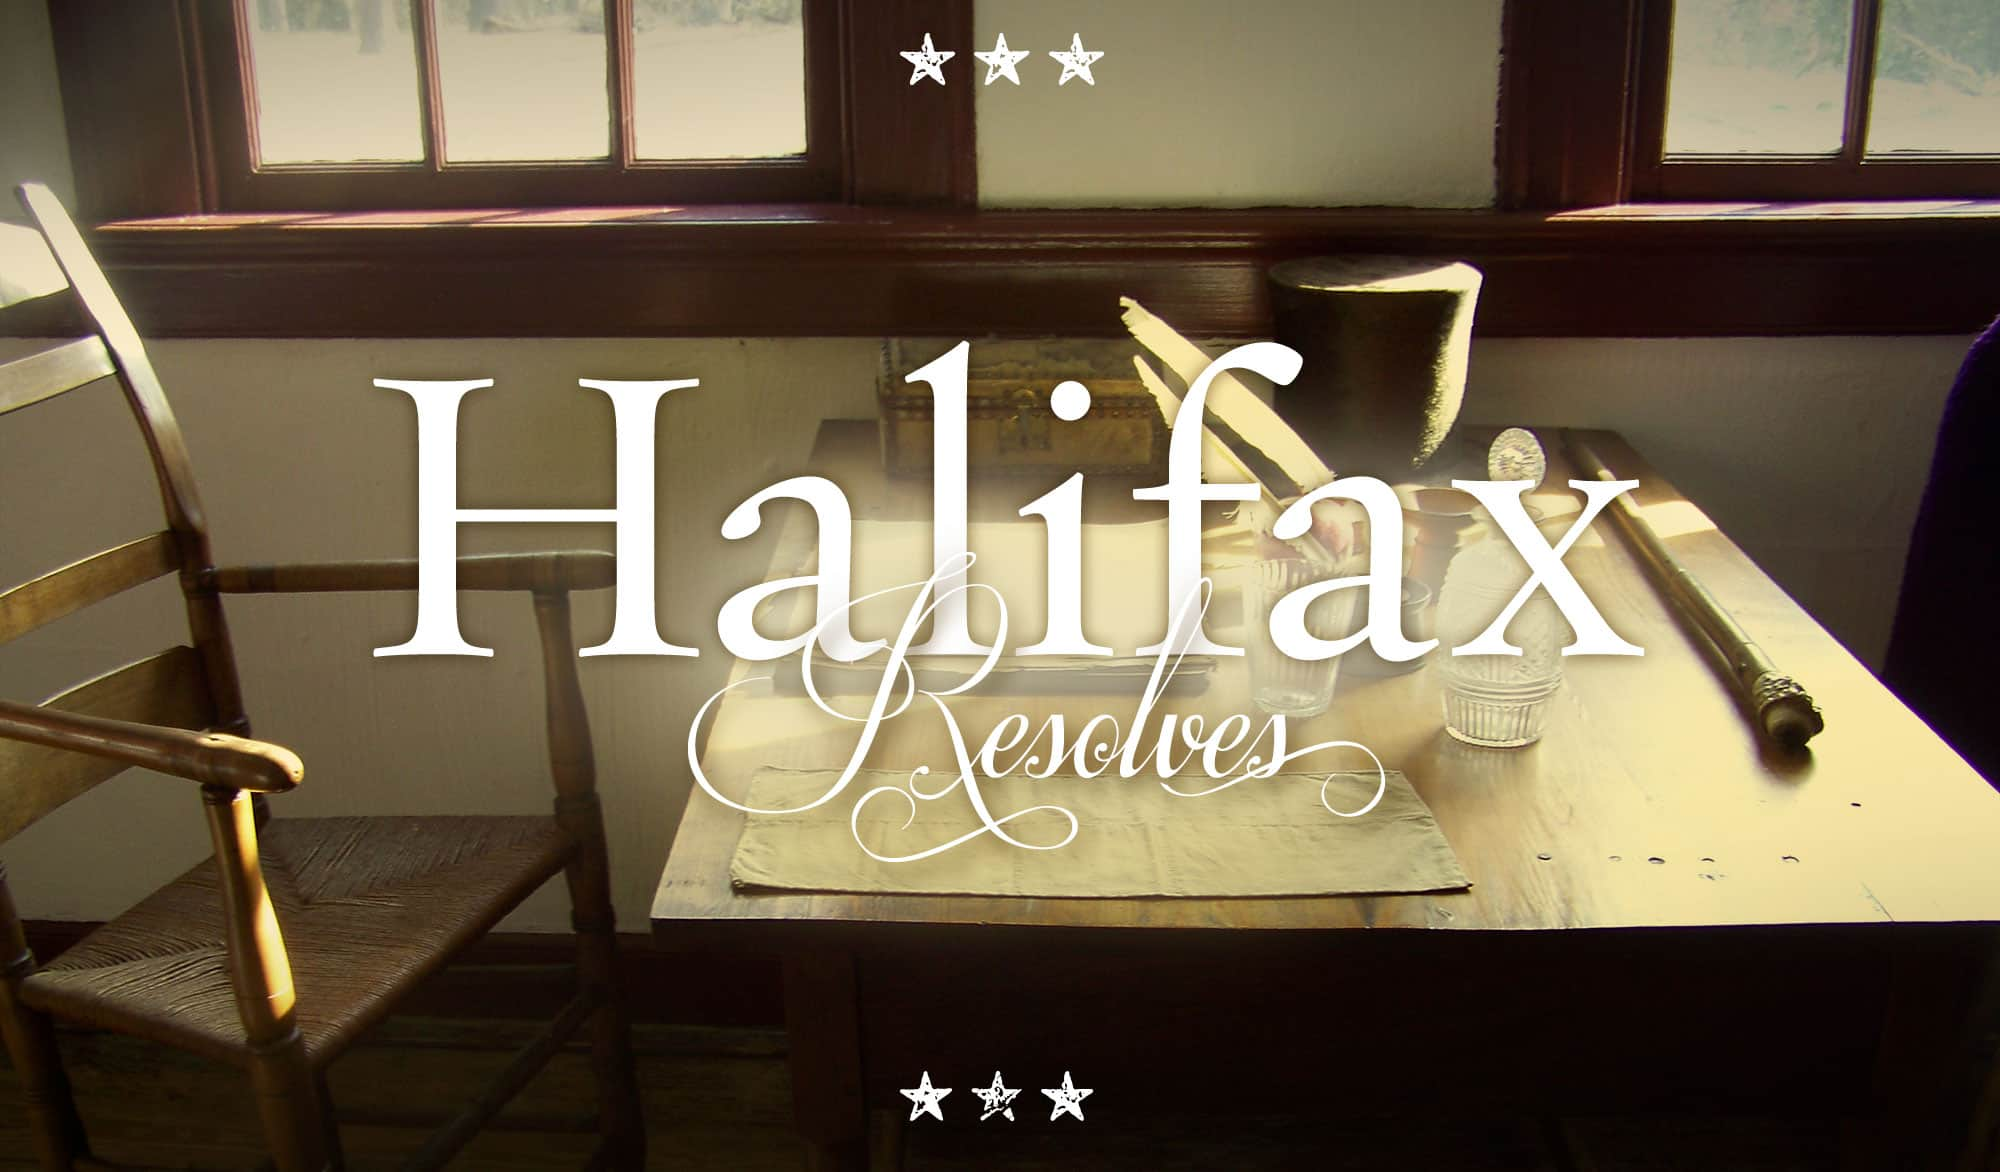 Halifax Resolves